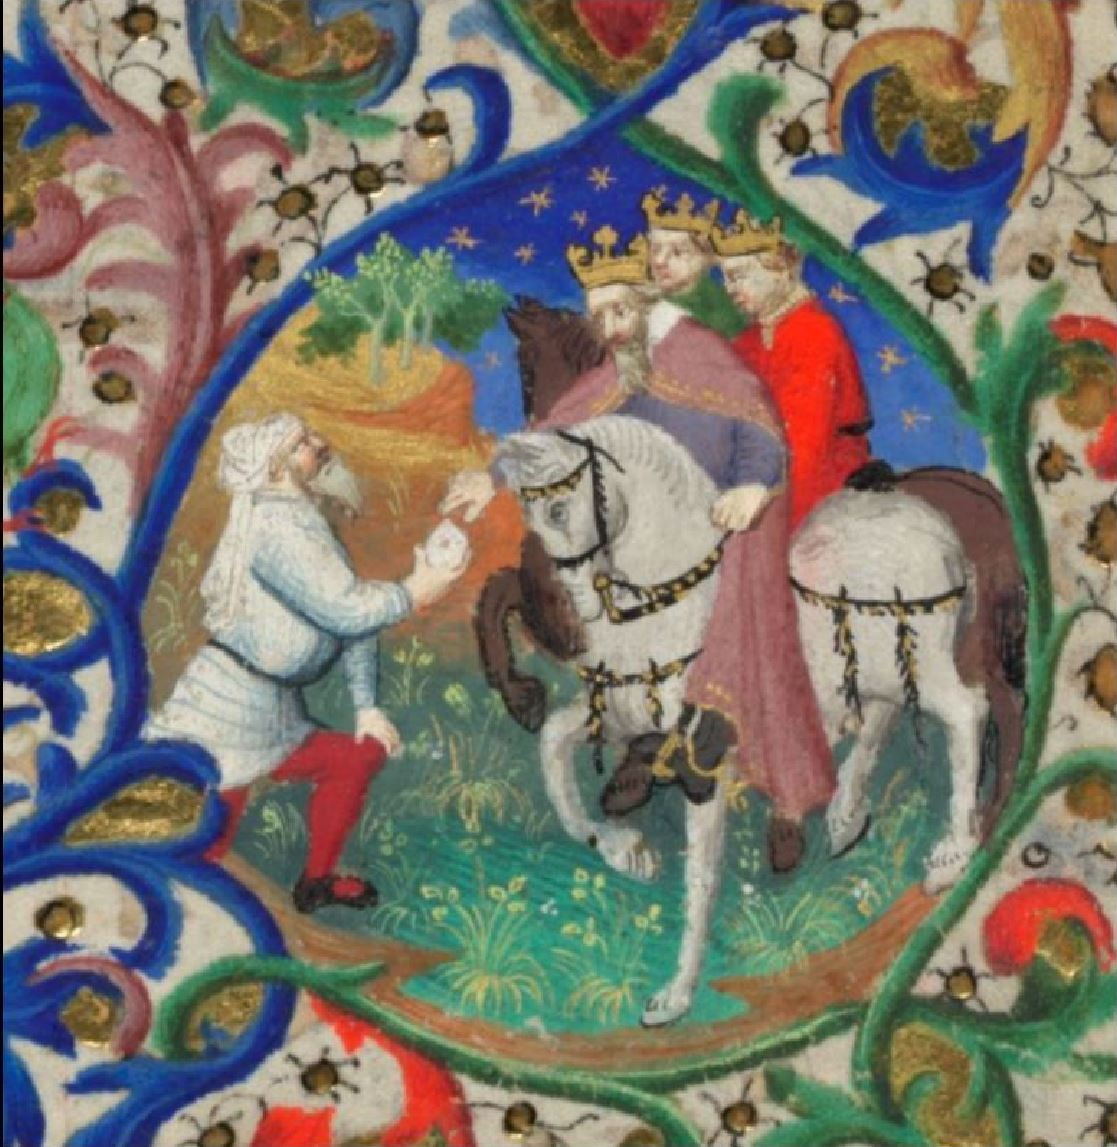 Bedford Hours 1410-30 Natvite_British_Library_Add_MS_18850_f 75r detail